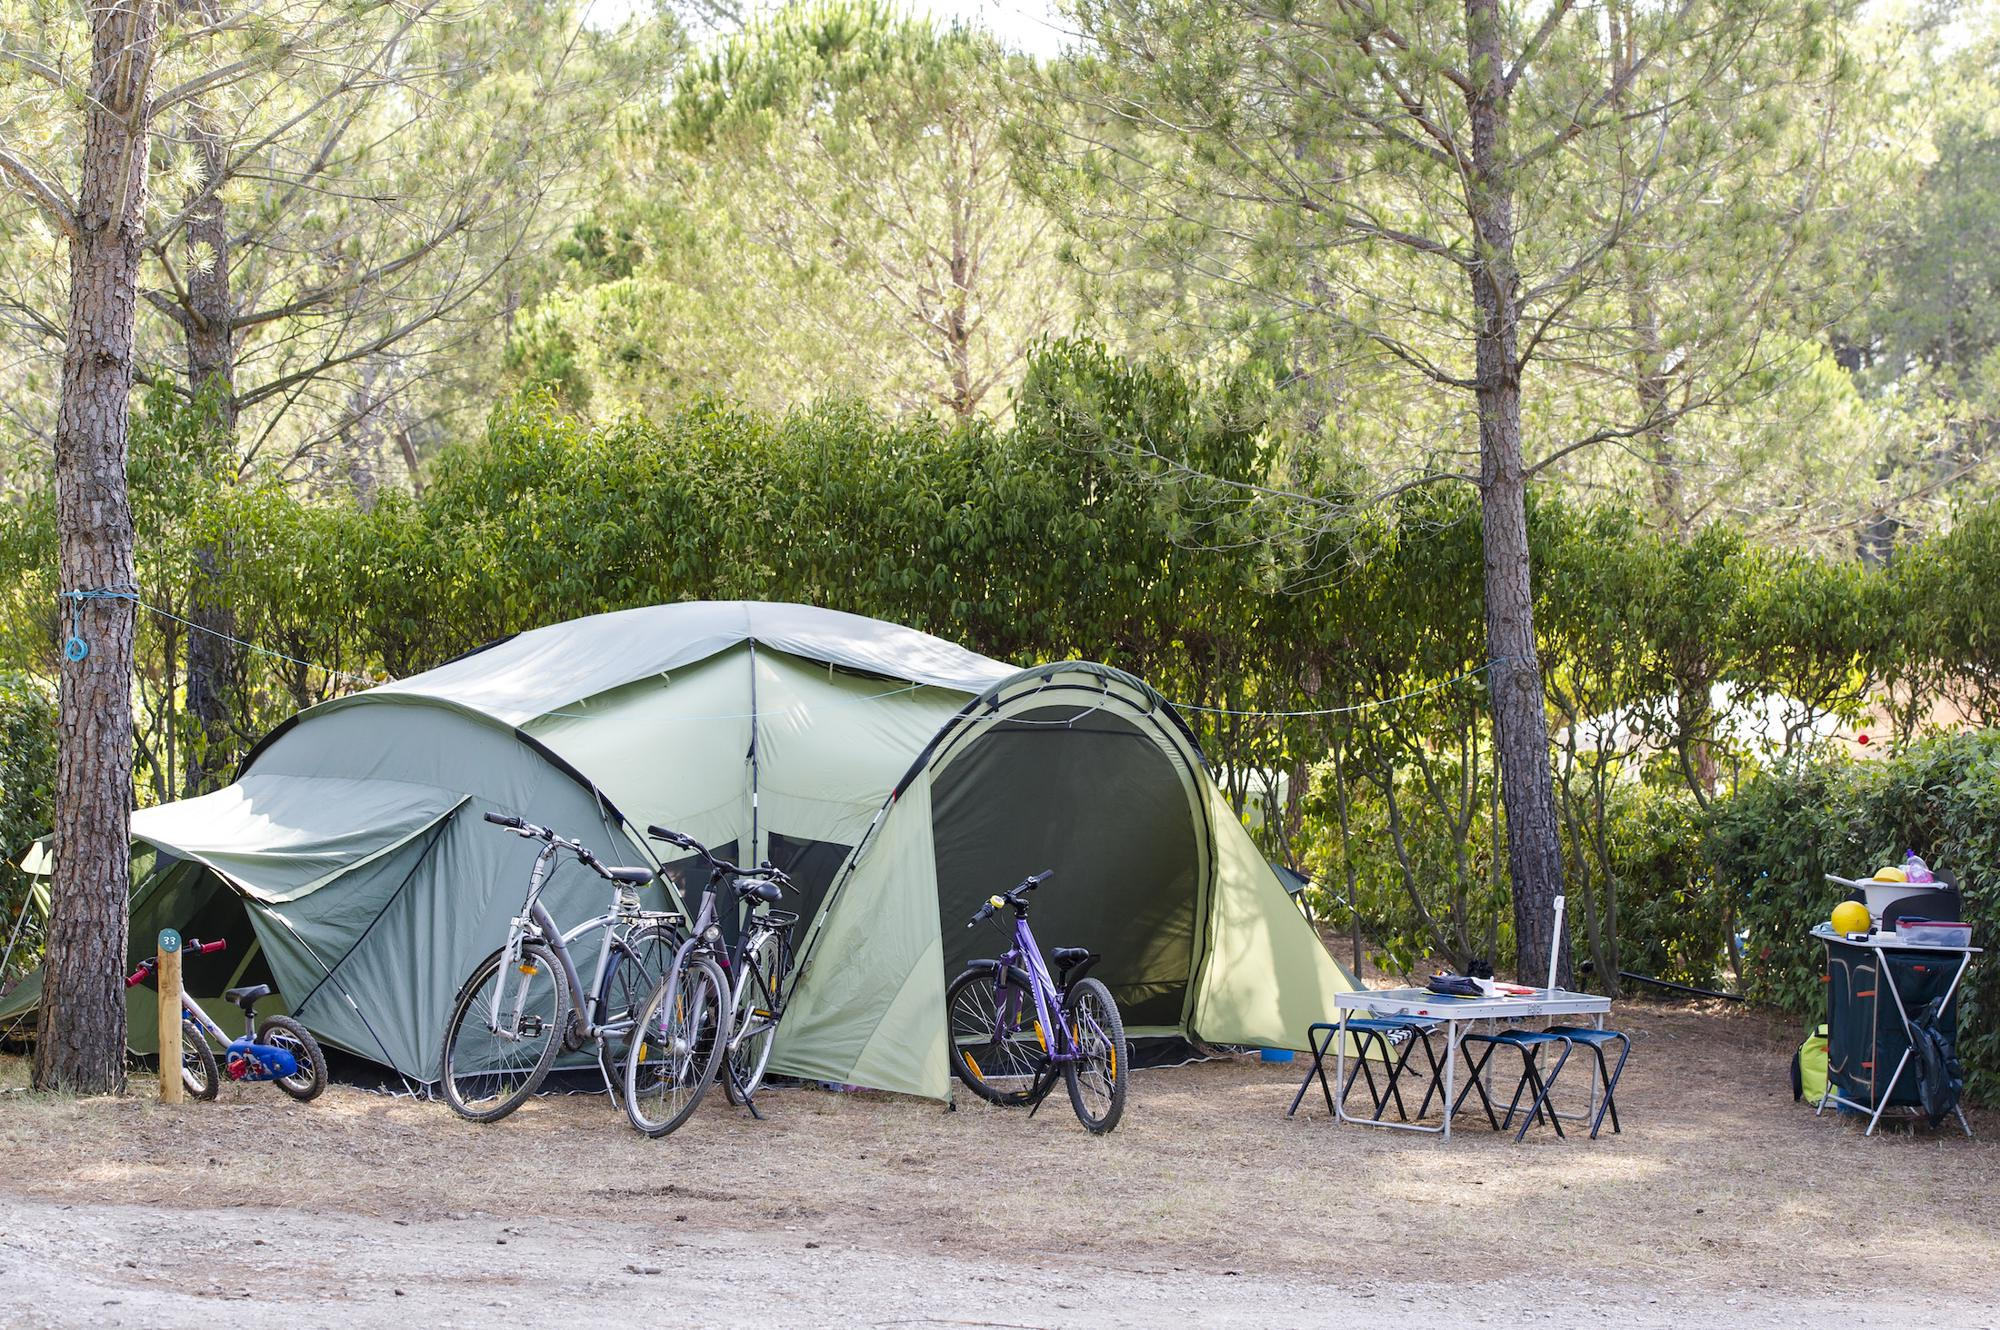 Campsites in Provence Alpes Cote D'Azur – Glampingly